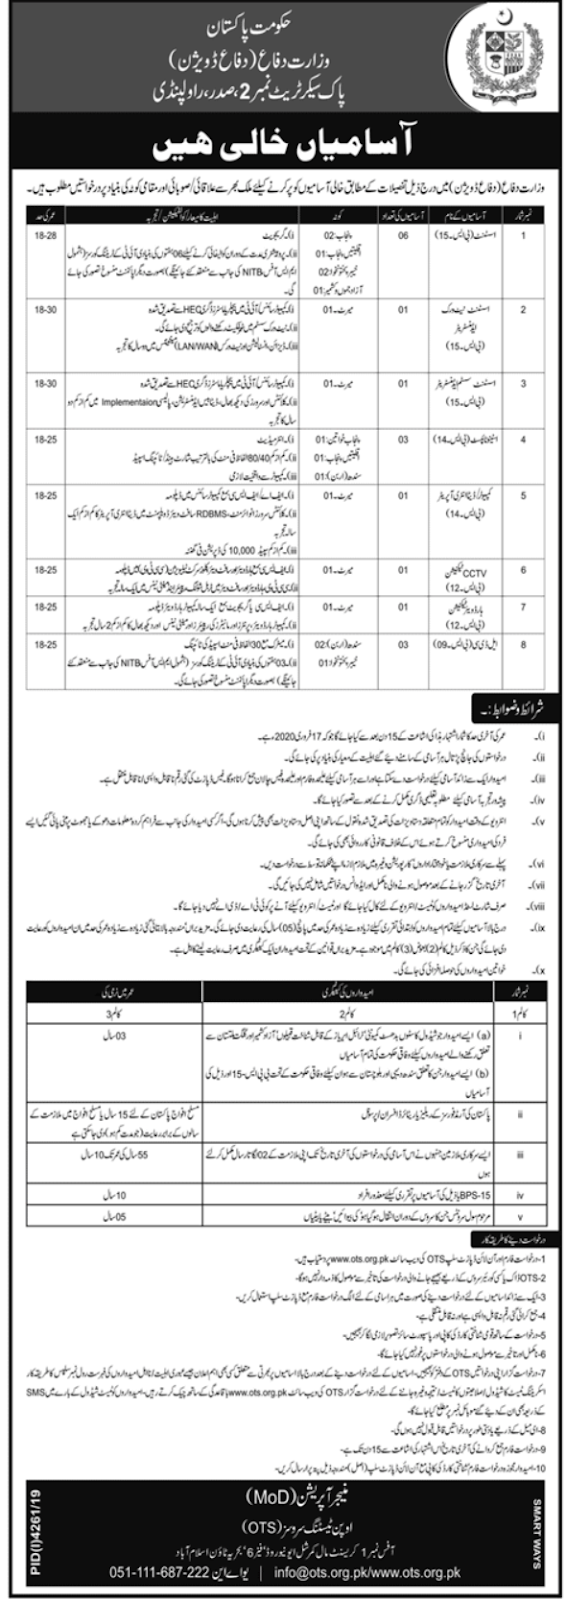 Management Jobs in Ministry of Defence MoD 2020 via OTS Testing Service